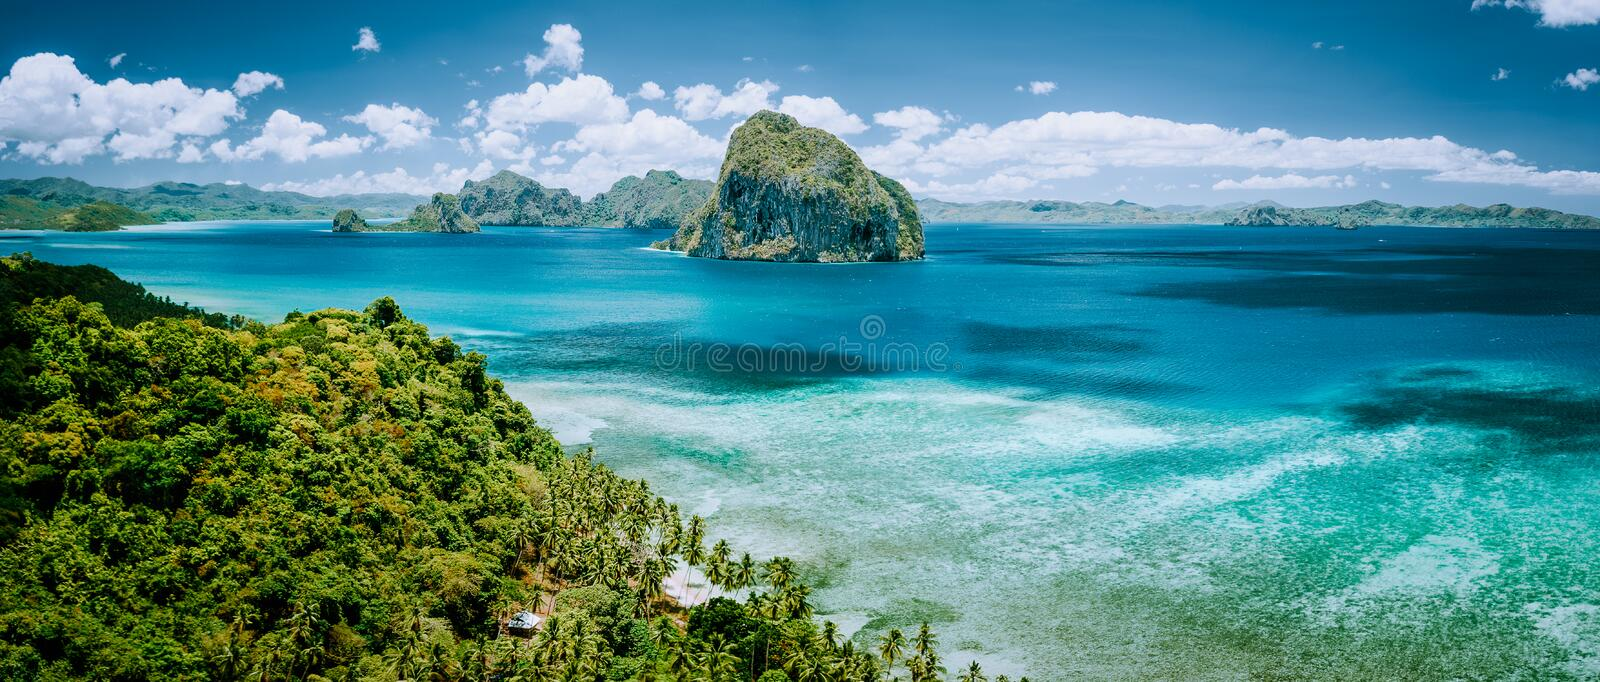 Panoramic aerial view of tropical Palawan island with unique Pinagbuyutan island on horizon. El Nido-Philippines. Southeast Asia Bacuit archipelago stock photography